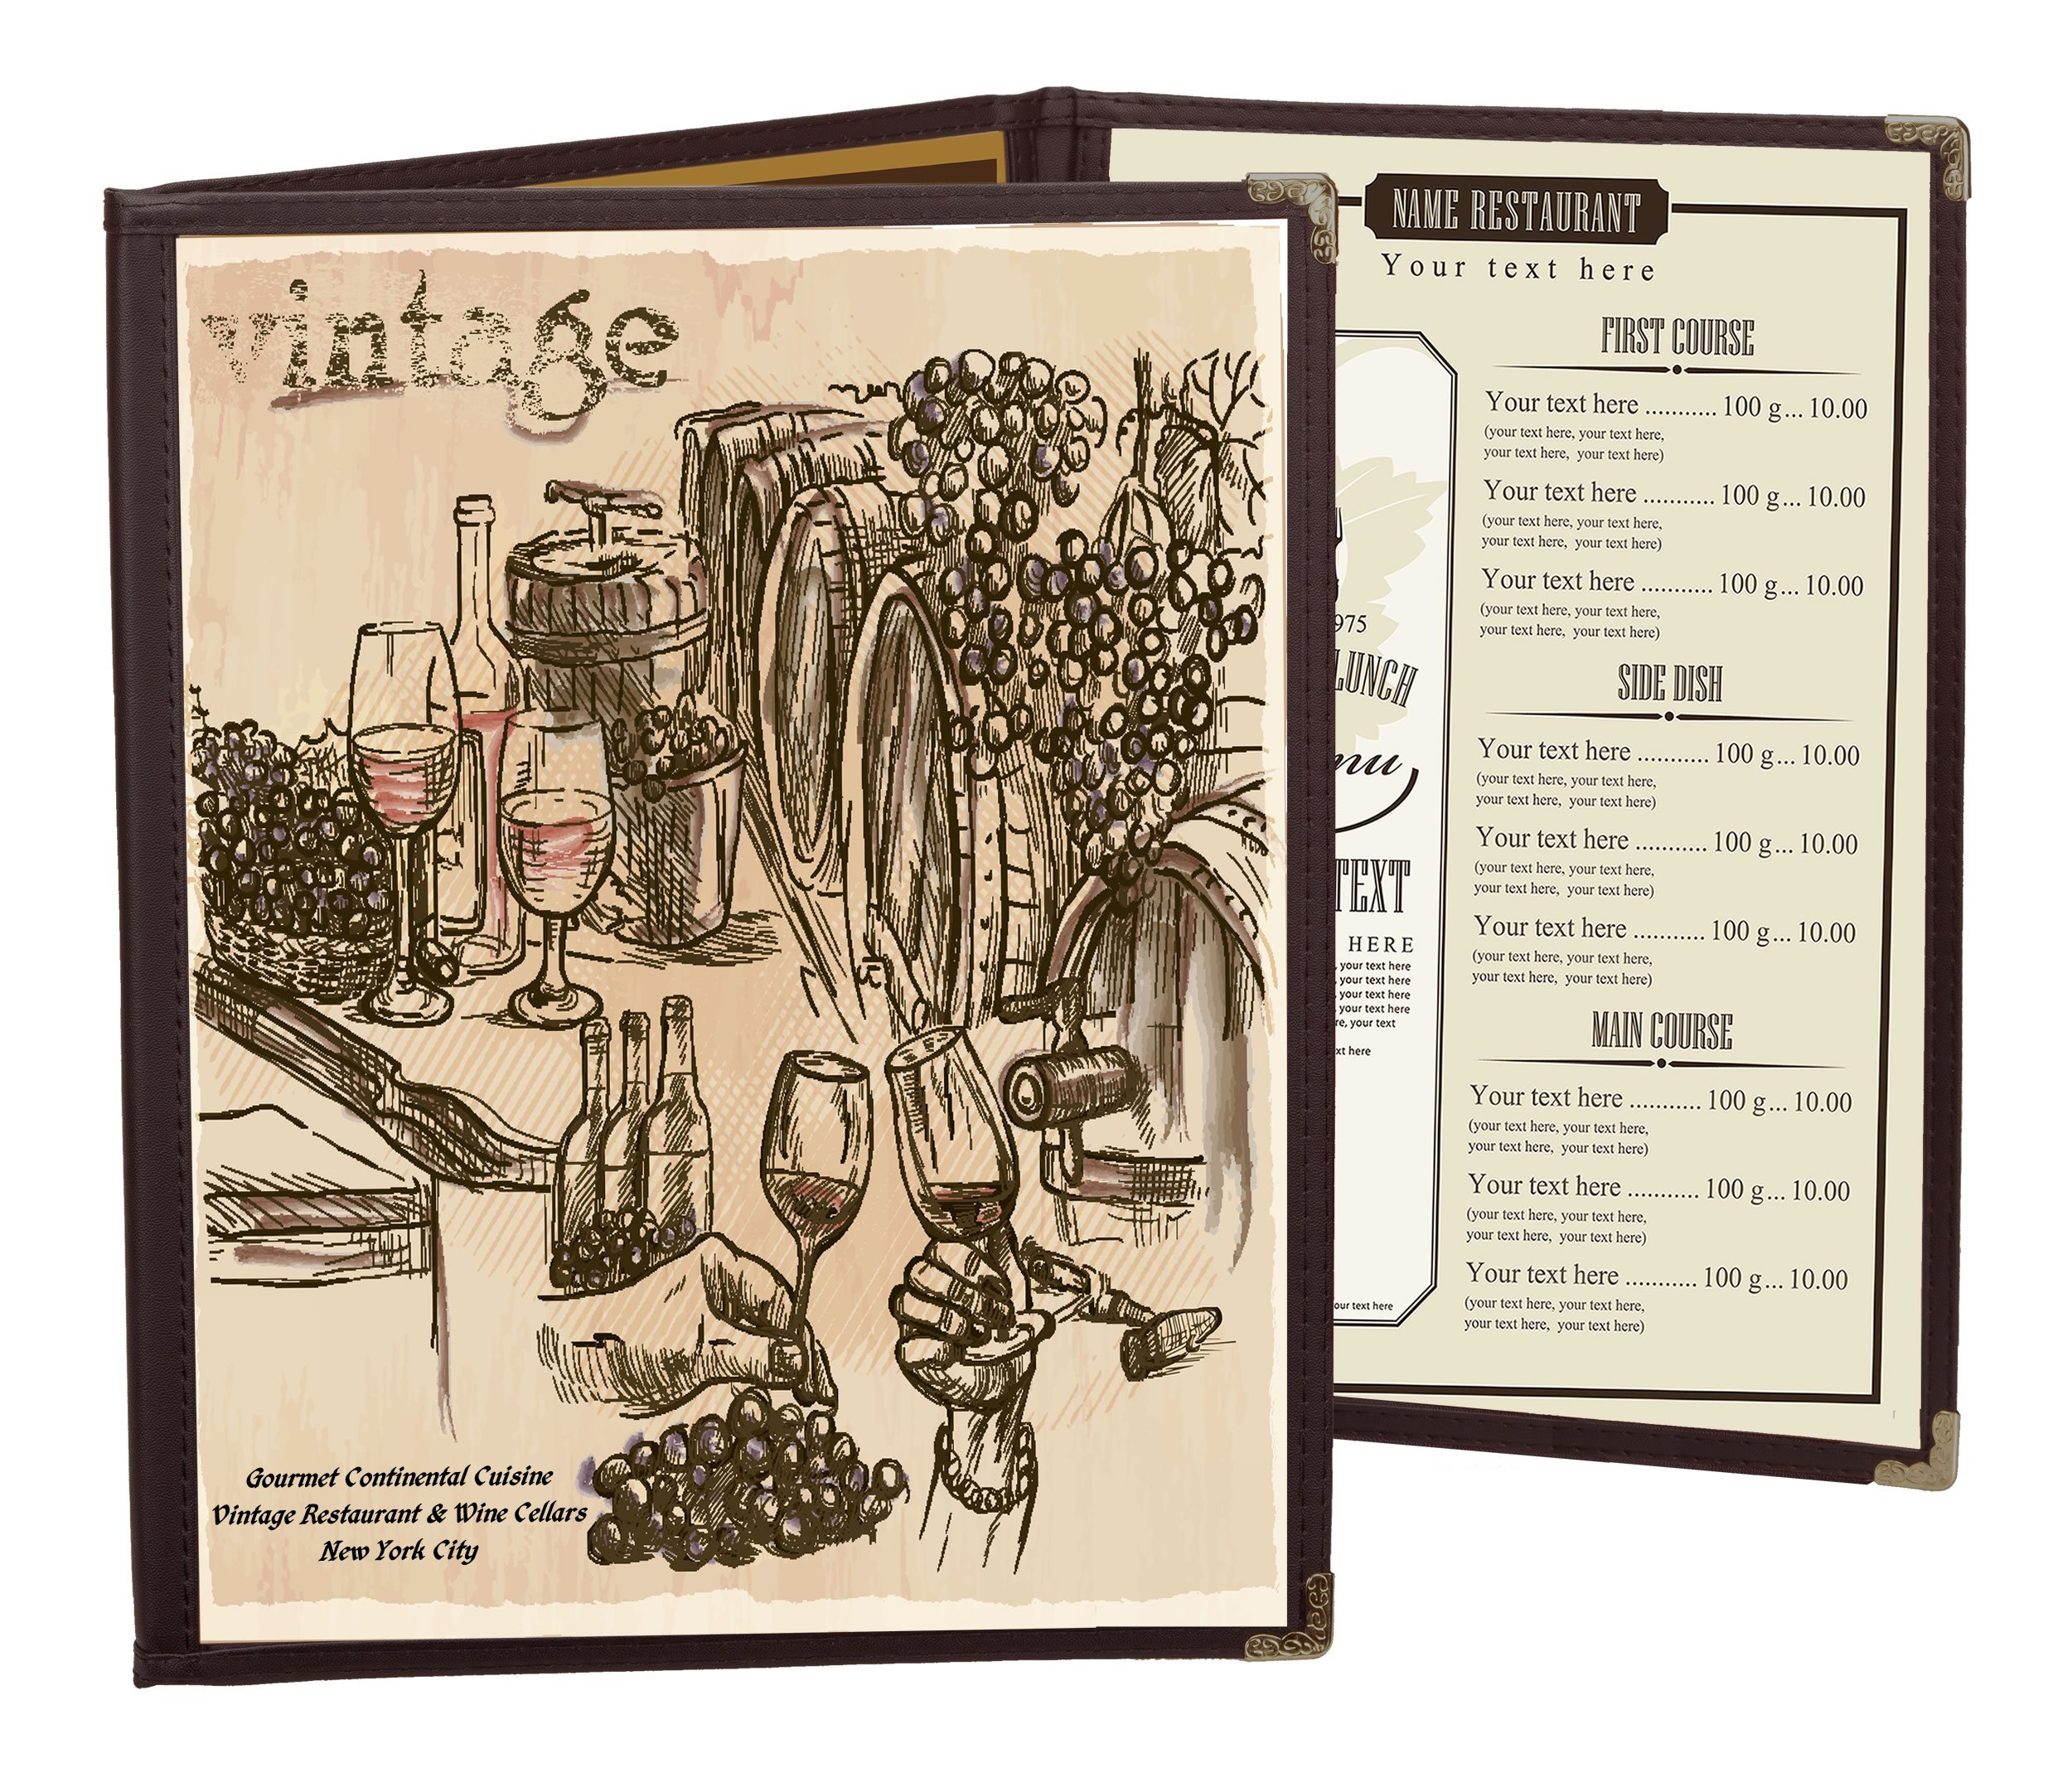 25 BETTER QUALITY Menu Covers #3106 BROWN TRIPLE PANEL FOLDOUT - 6-VIEW - 8.5'' WIDE x 11'' TALL - DOUBLE-STITCHED Leatherette Vinyl Edge. Gold corners. SEE MORE: Type MenuCoverMan in Amazon search.